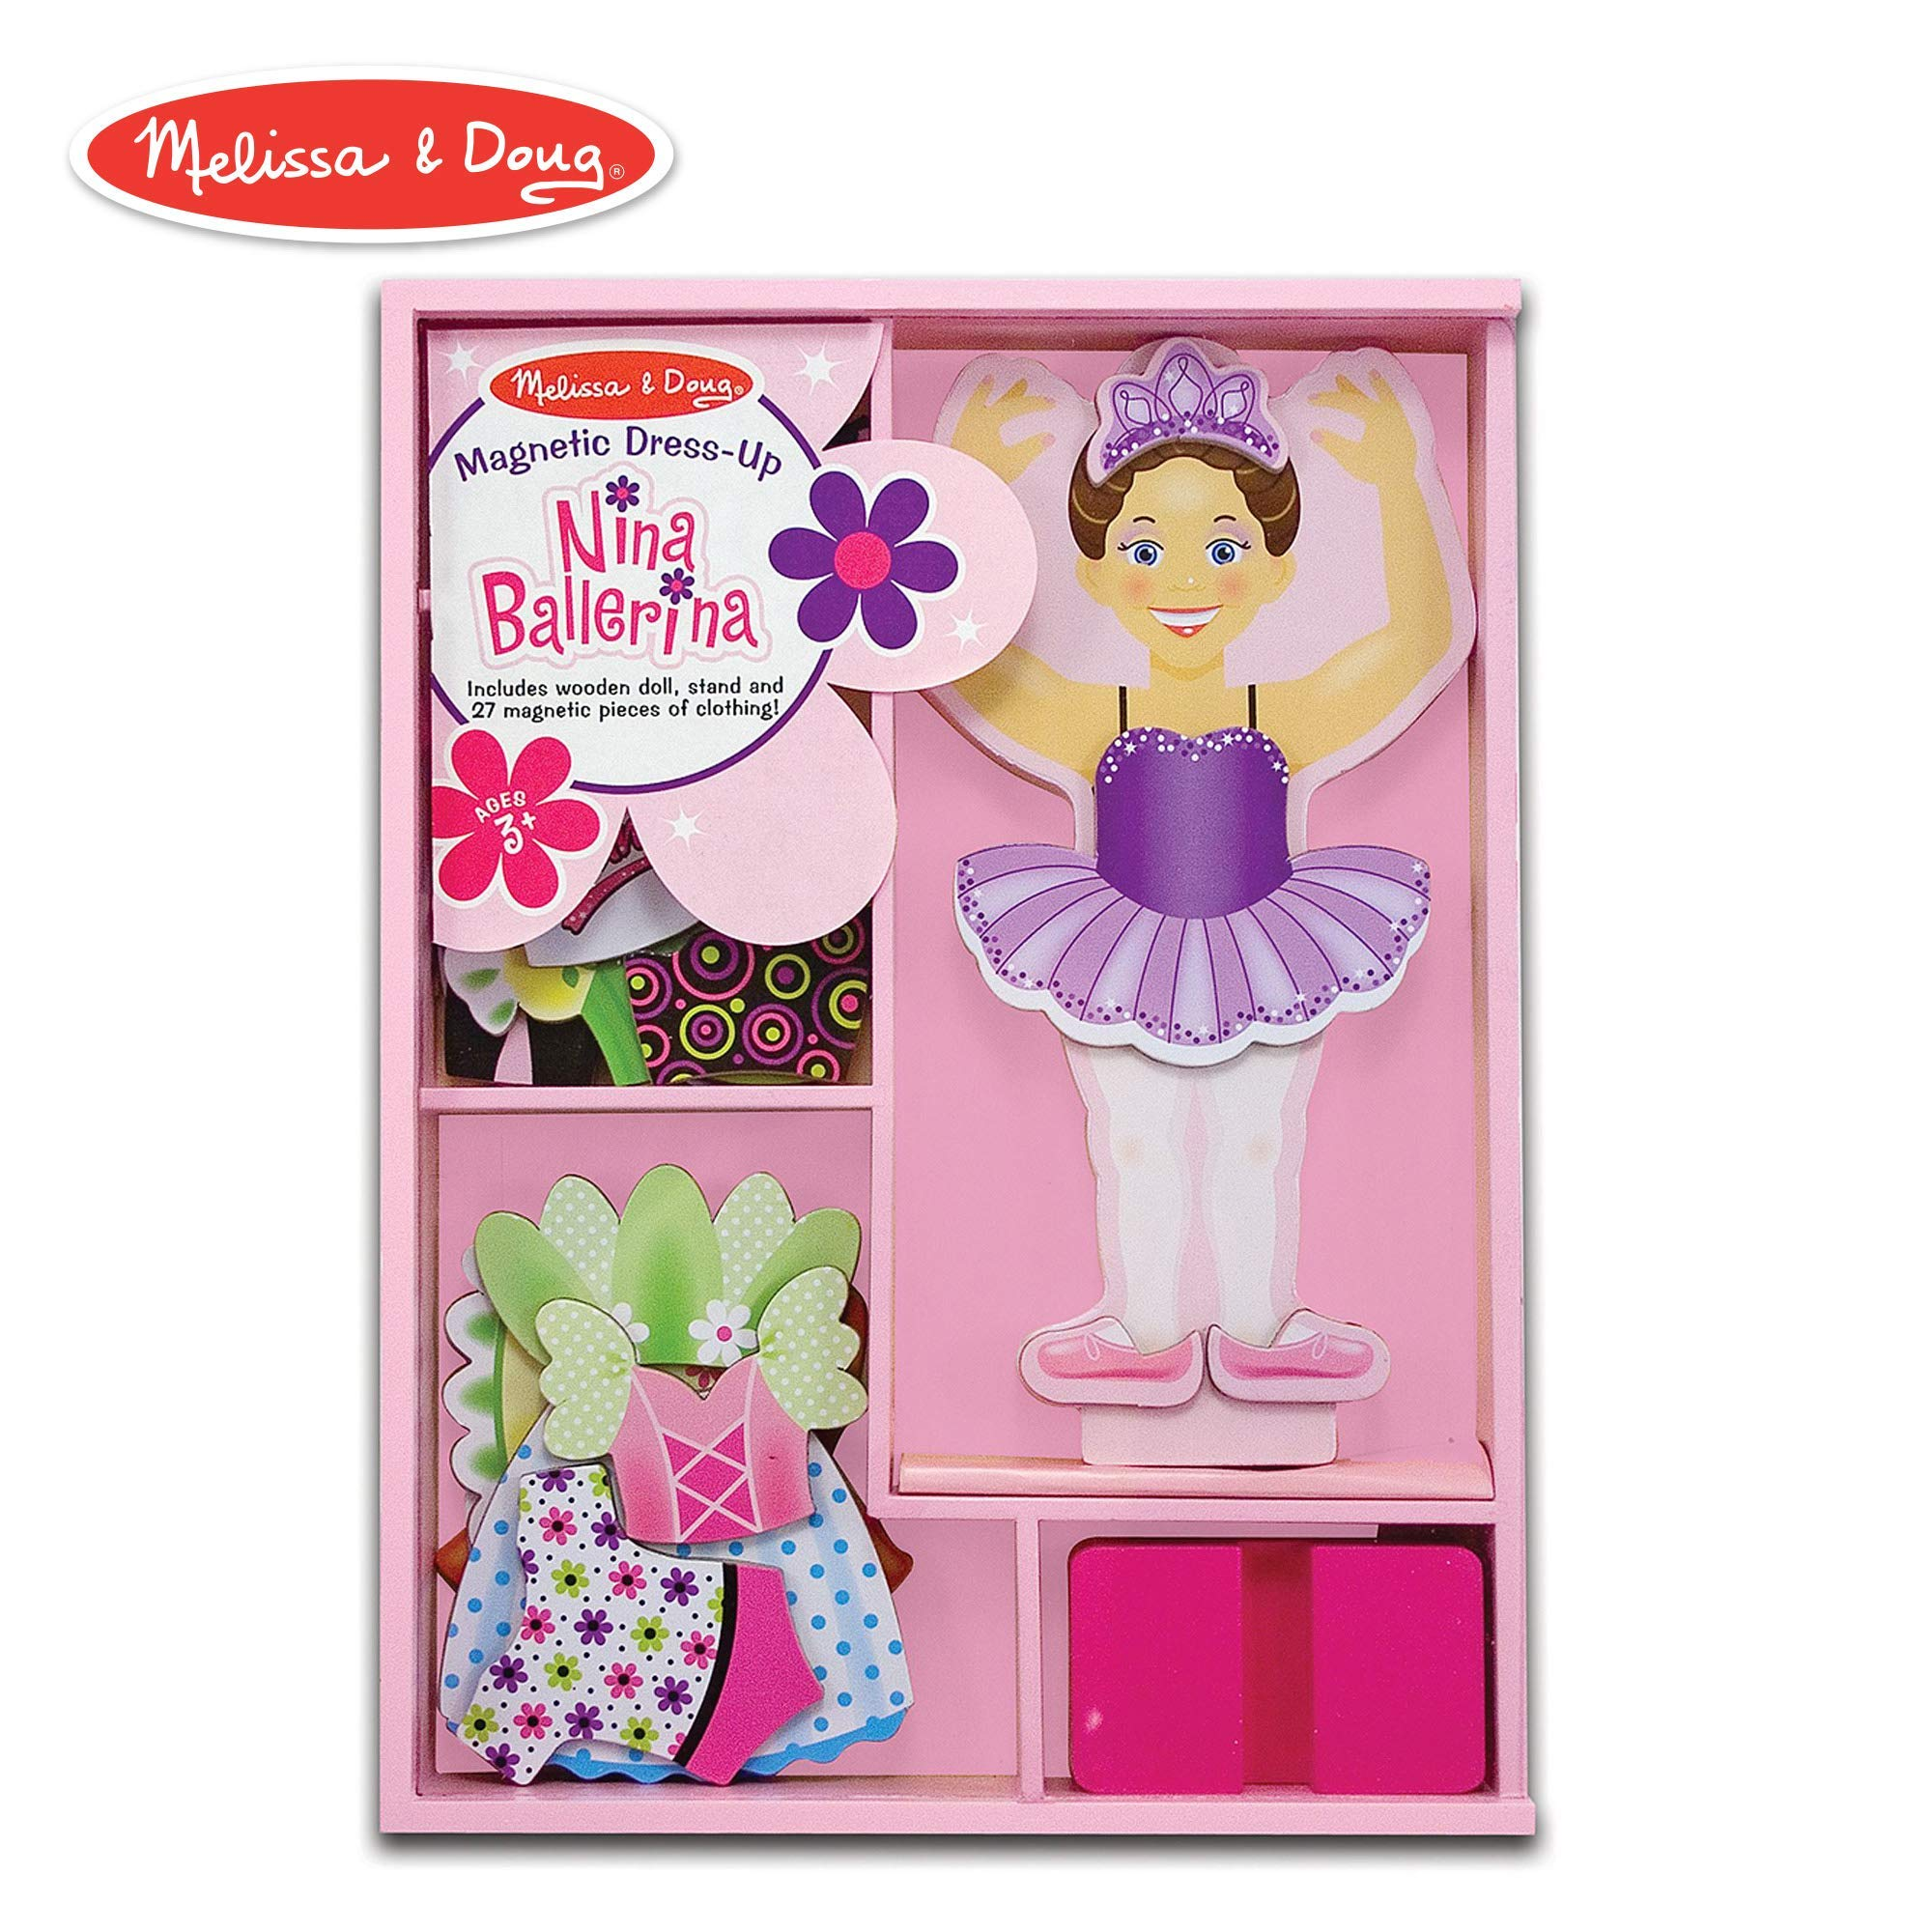 Melissa & Doug Nina Ballerina Magnetic Dress-Up Set, Pretend Play, 6 Outfits, Encourages Creativity, 27 Magnetic Pieces, 11.6'' H x 8.65'' W x 1.05'' L (Renewed) by Melissa & Doug